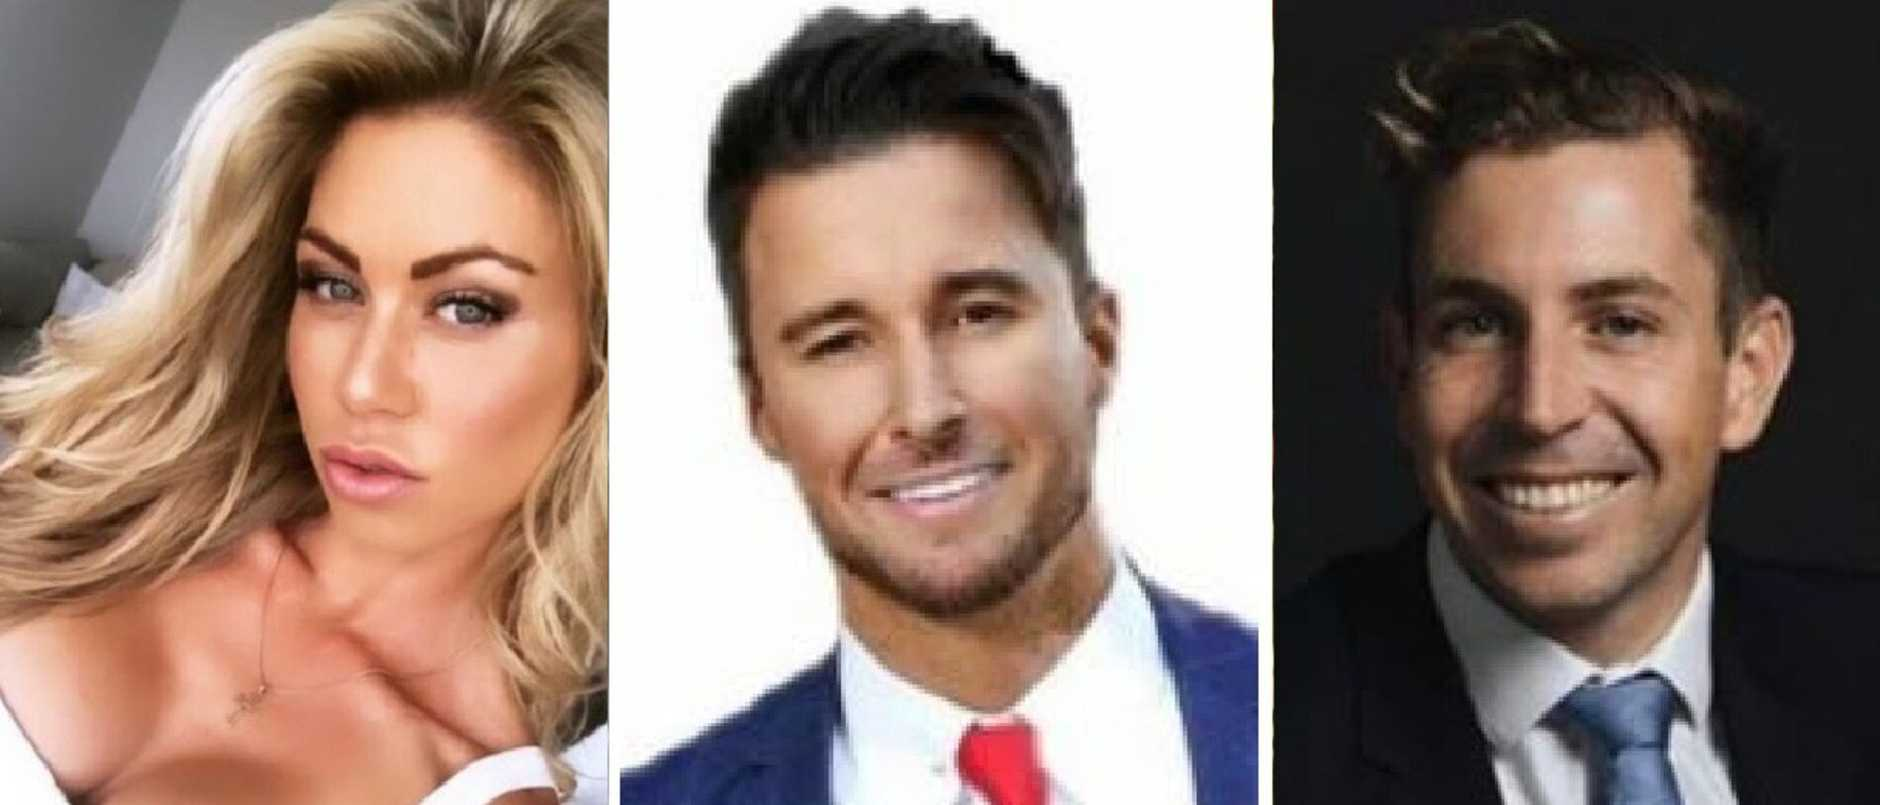 These are the people who have been nominated for Australia's Sexiest Real Estate Agent.